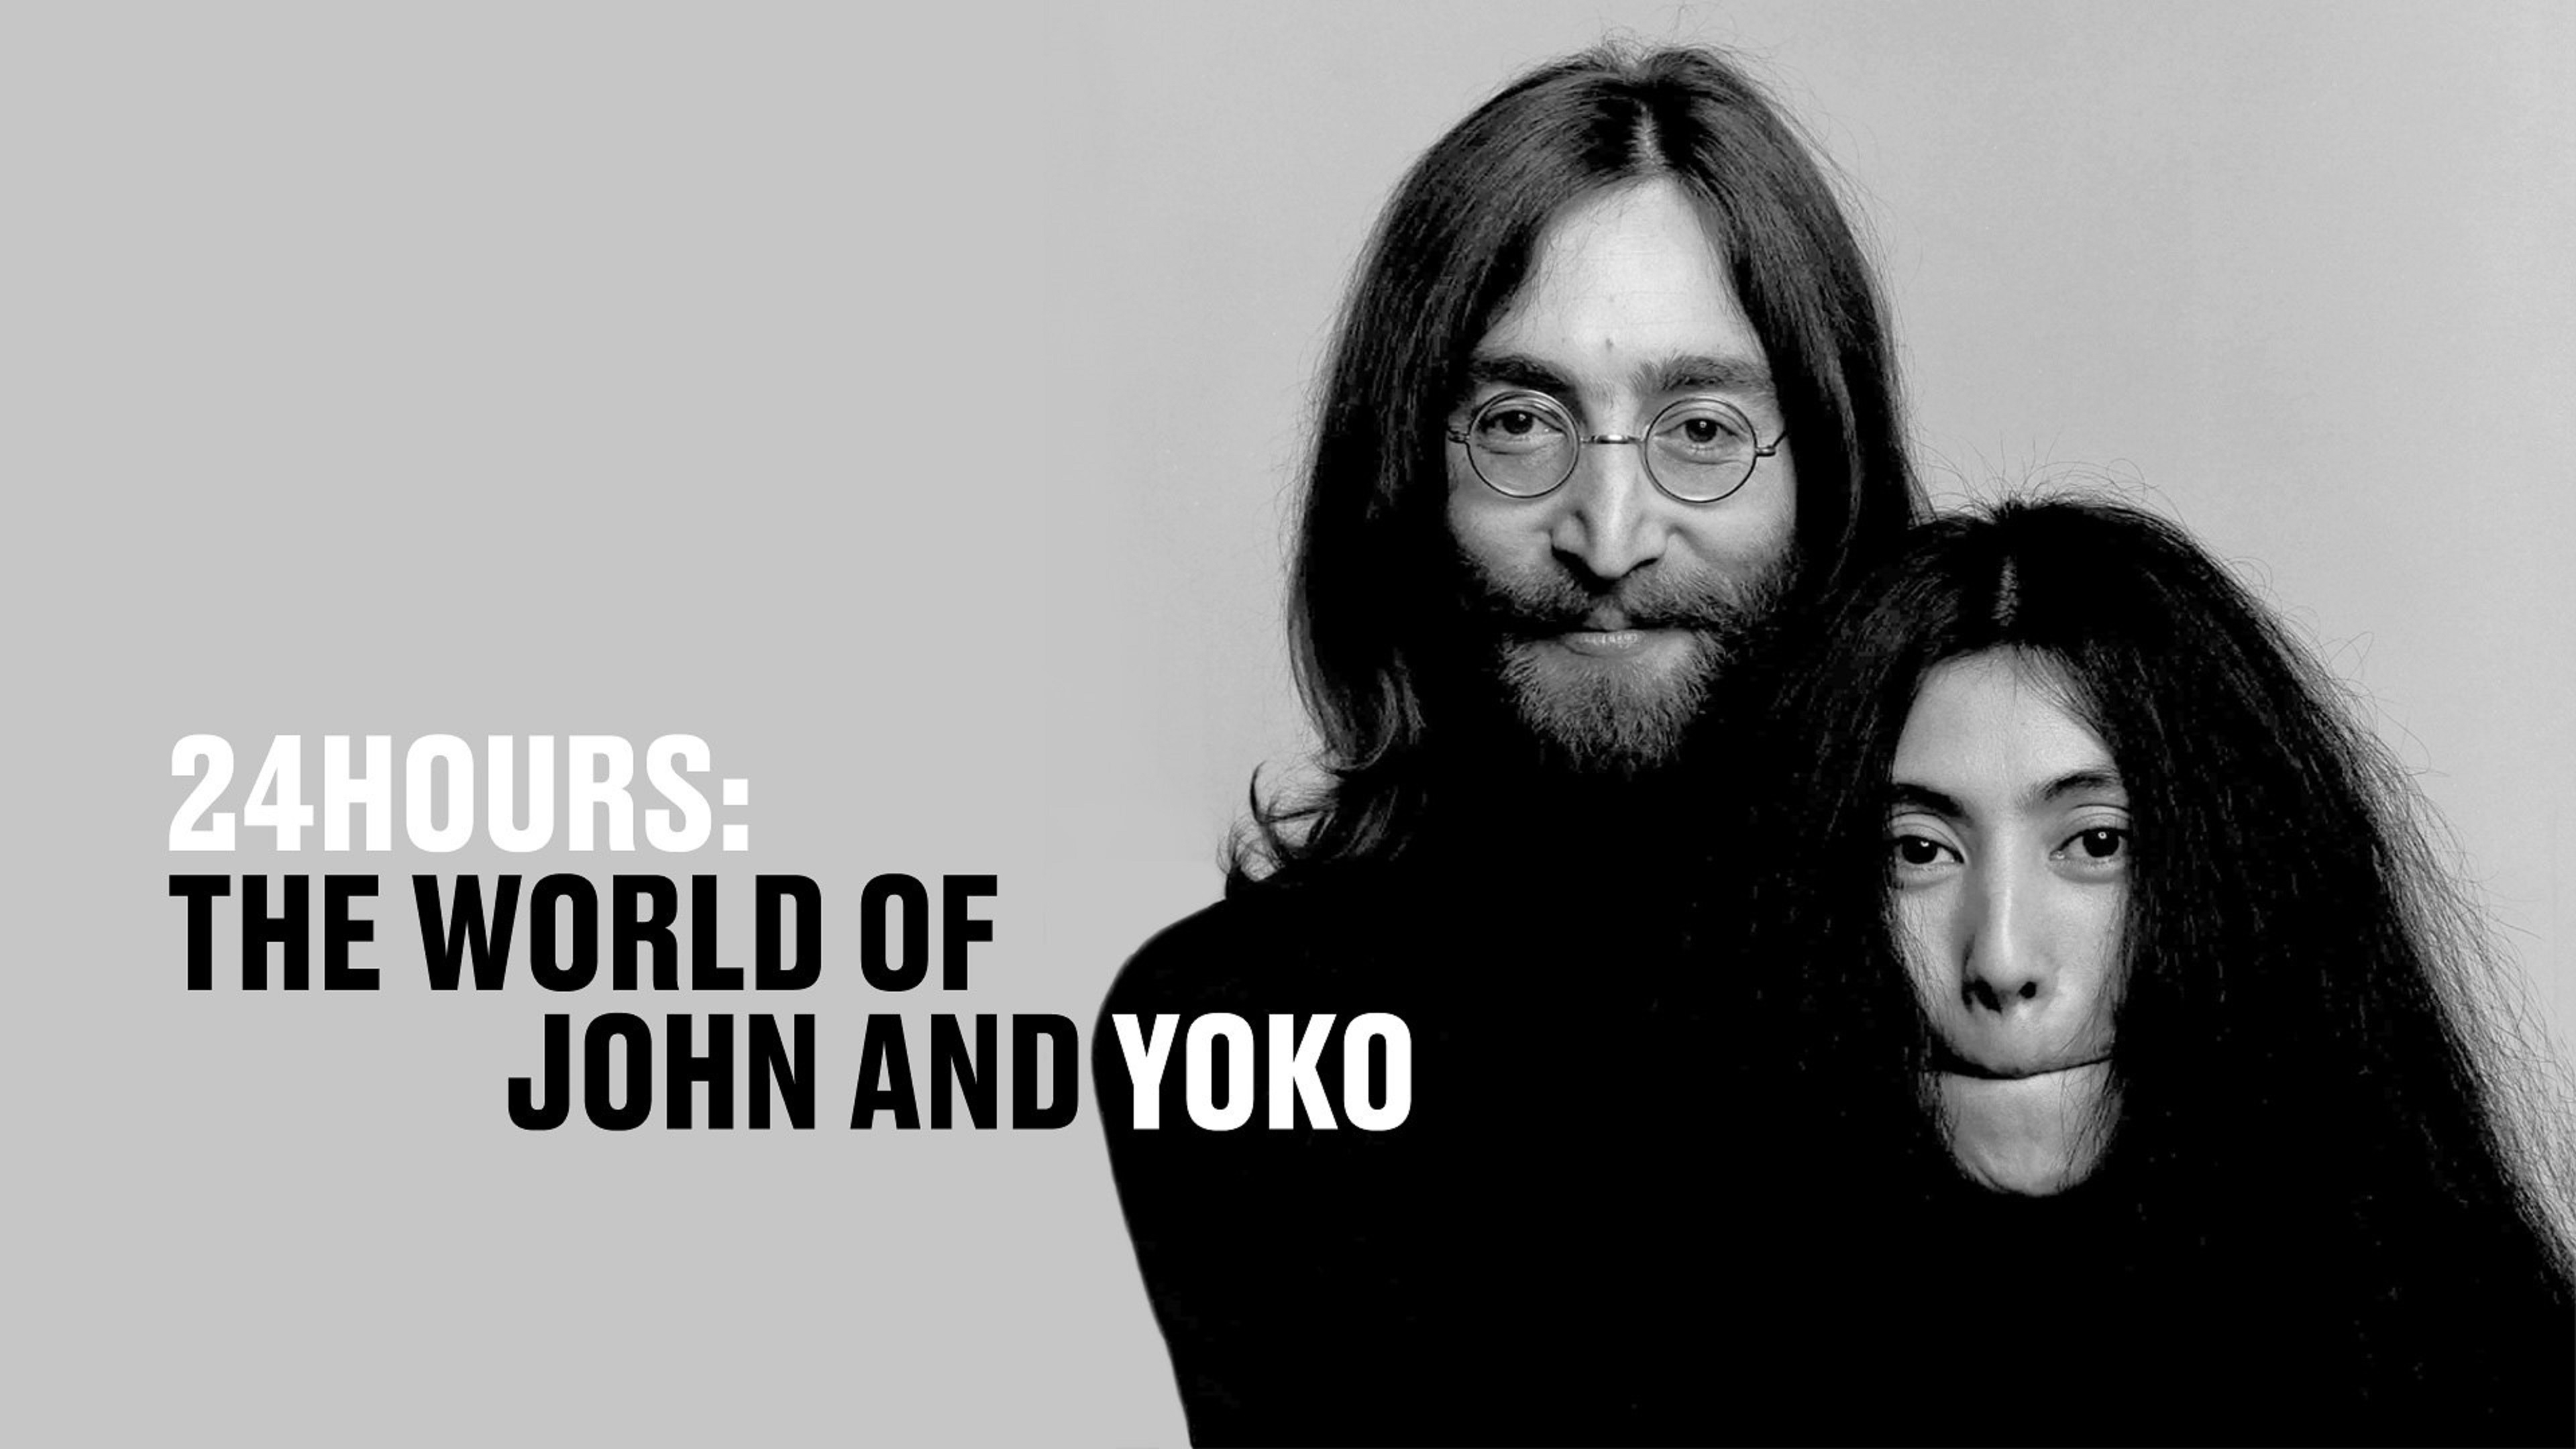 '24 HOURS: THE WORLD OF JOHN AND YOKO' NOW STREAMING